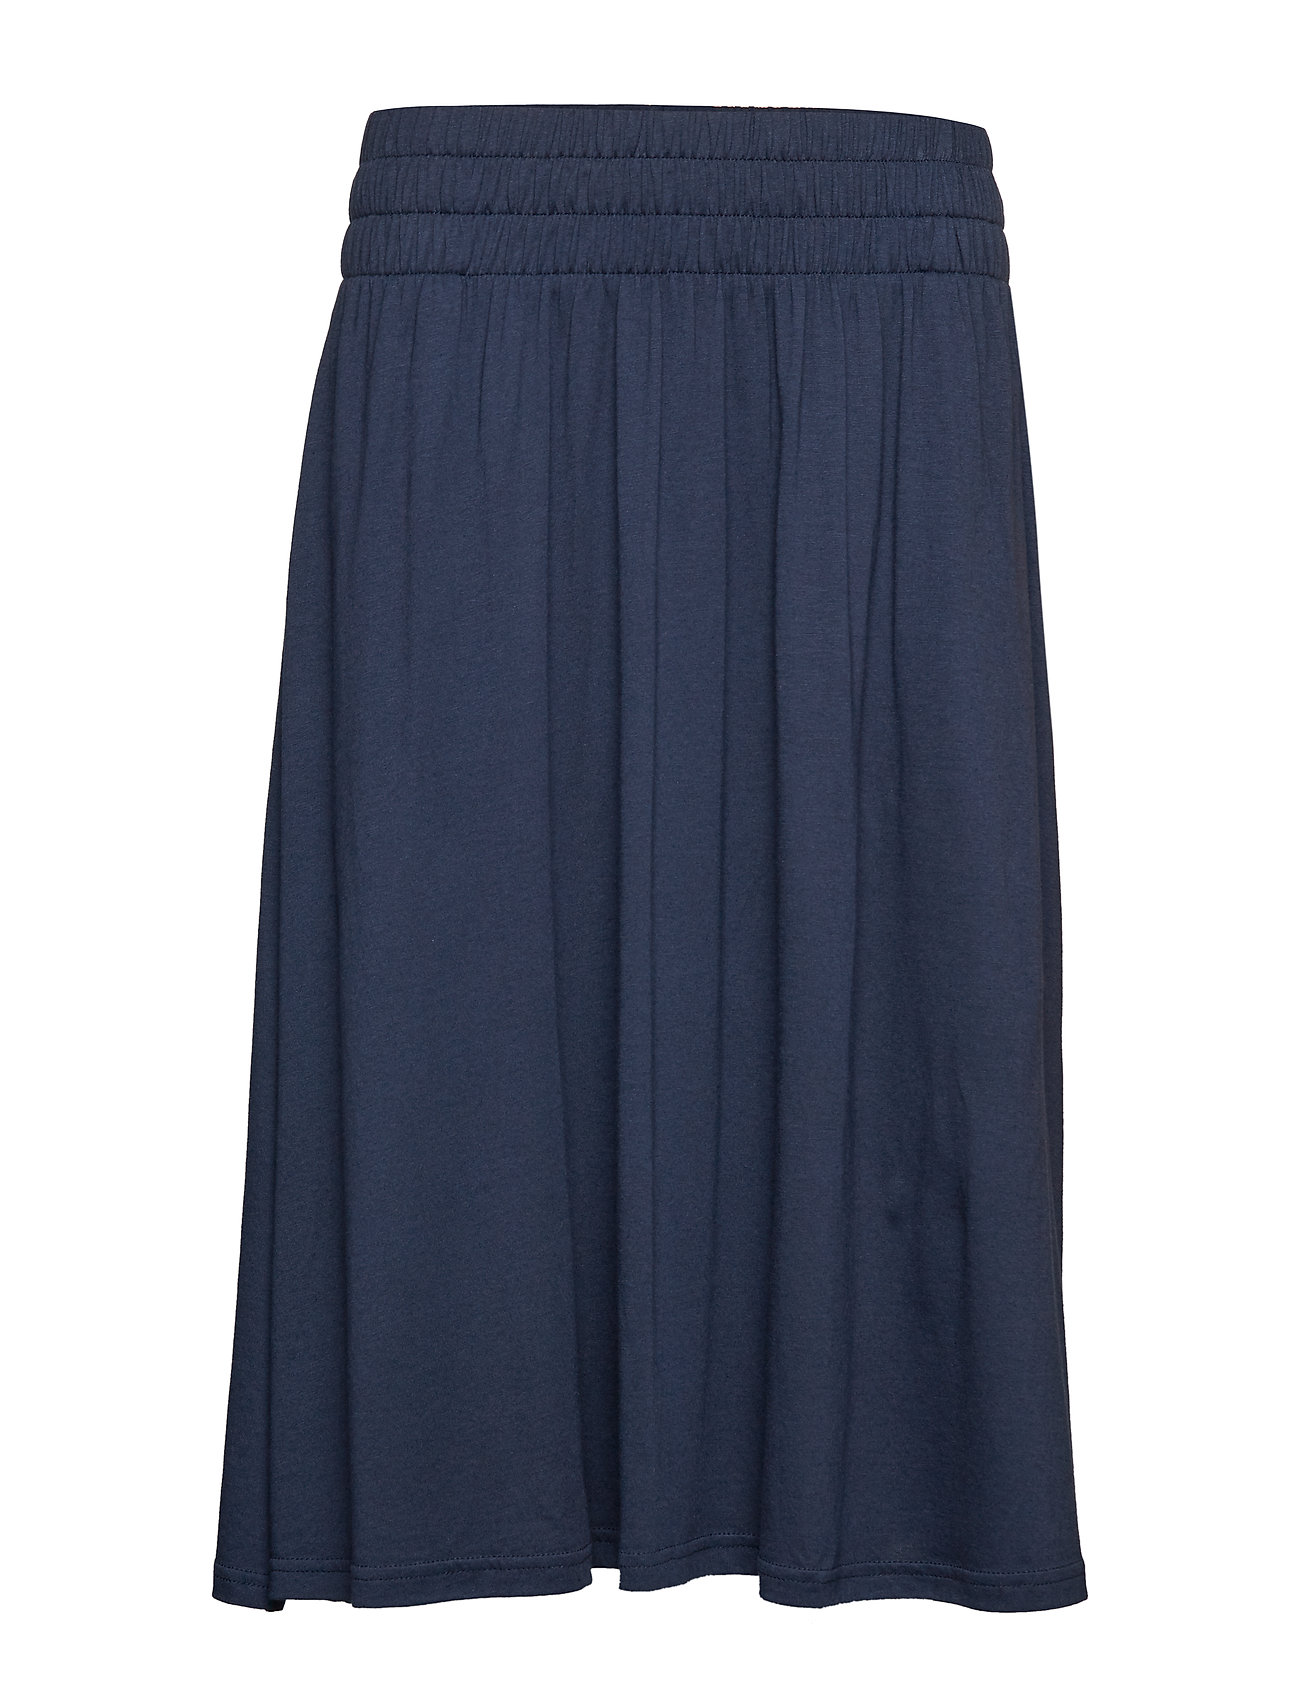 Lexington Clothing Jenni Jersey Skirt